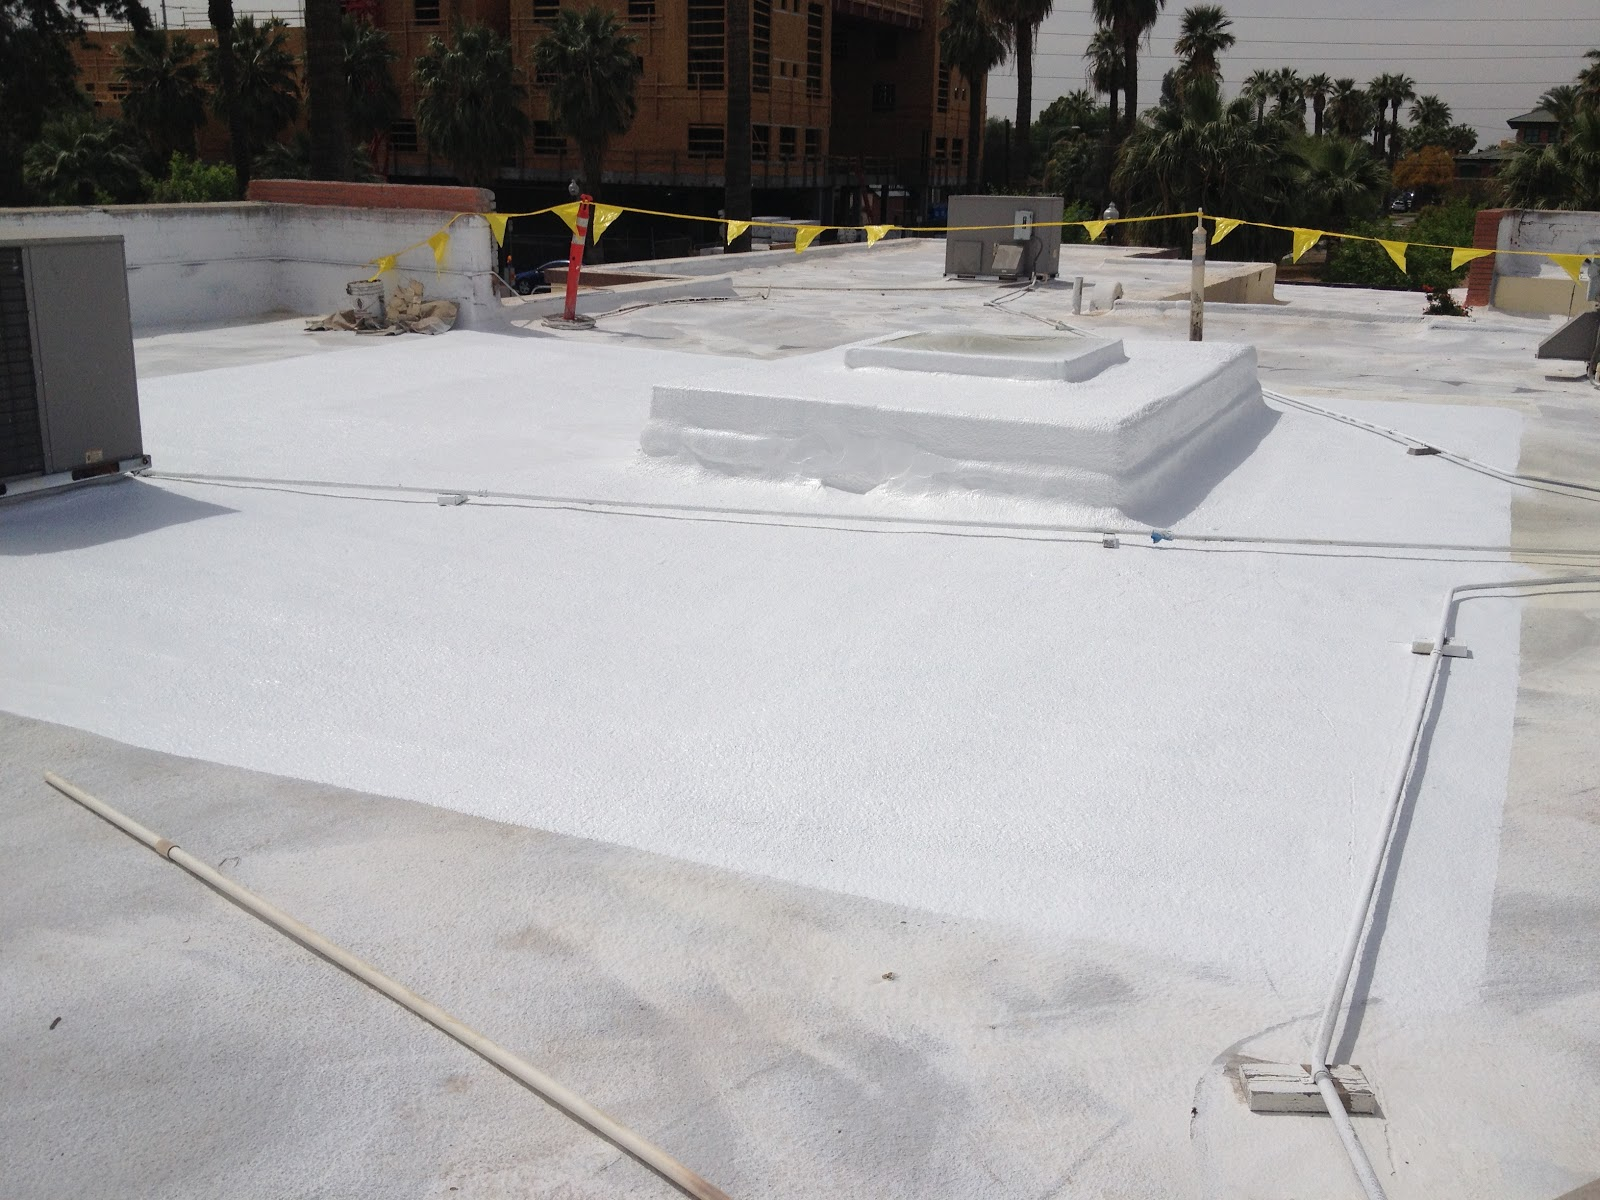 Spray Foam And Roof Coating Repairs In Downtown Phoenix